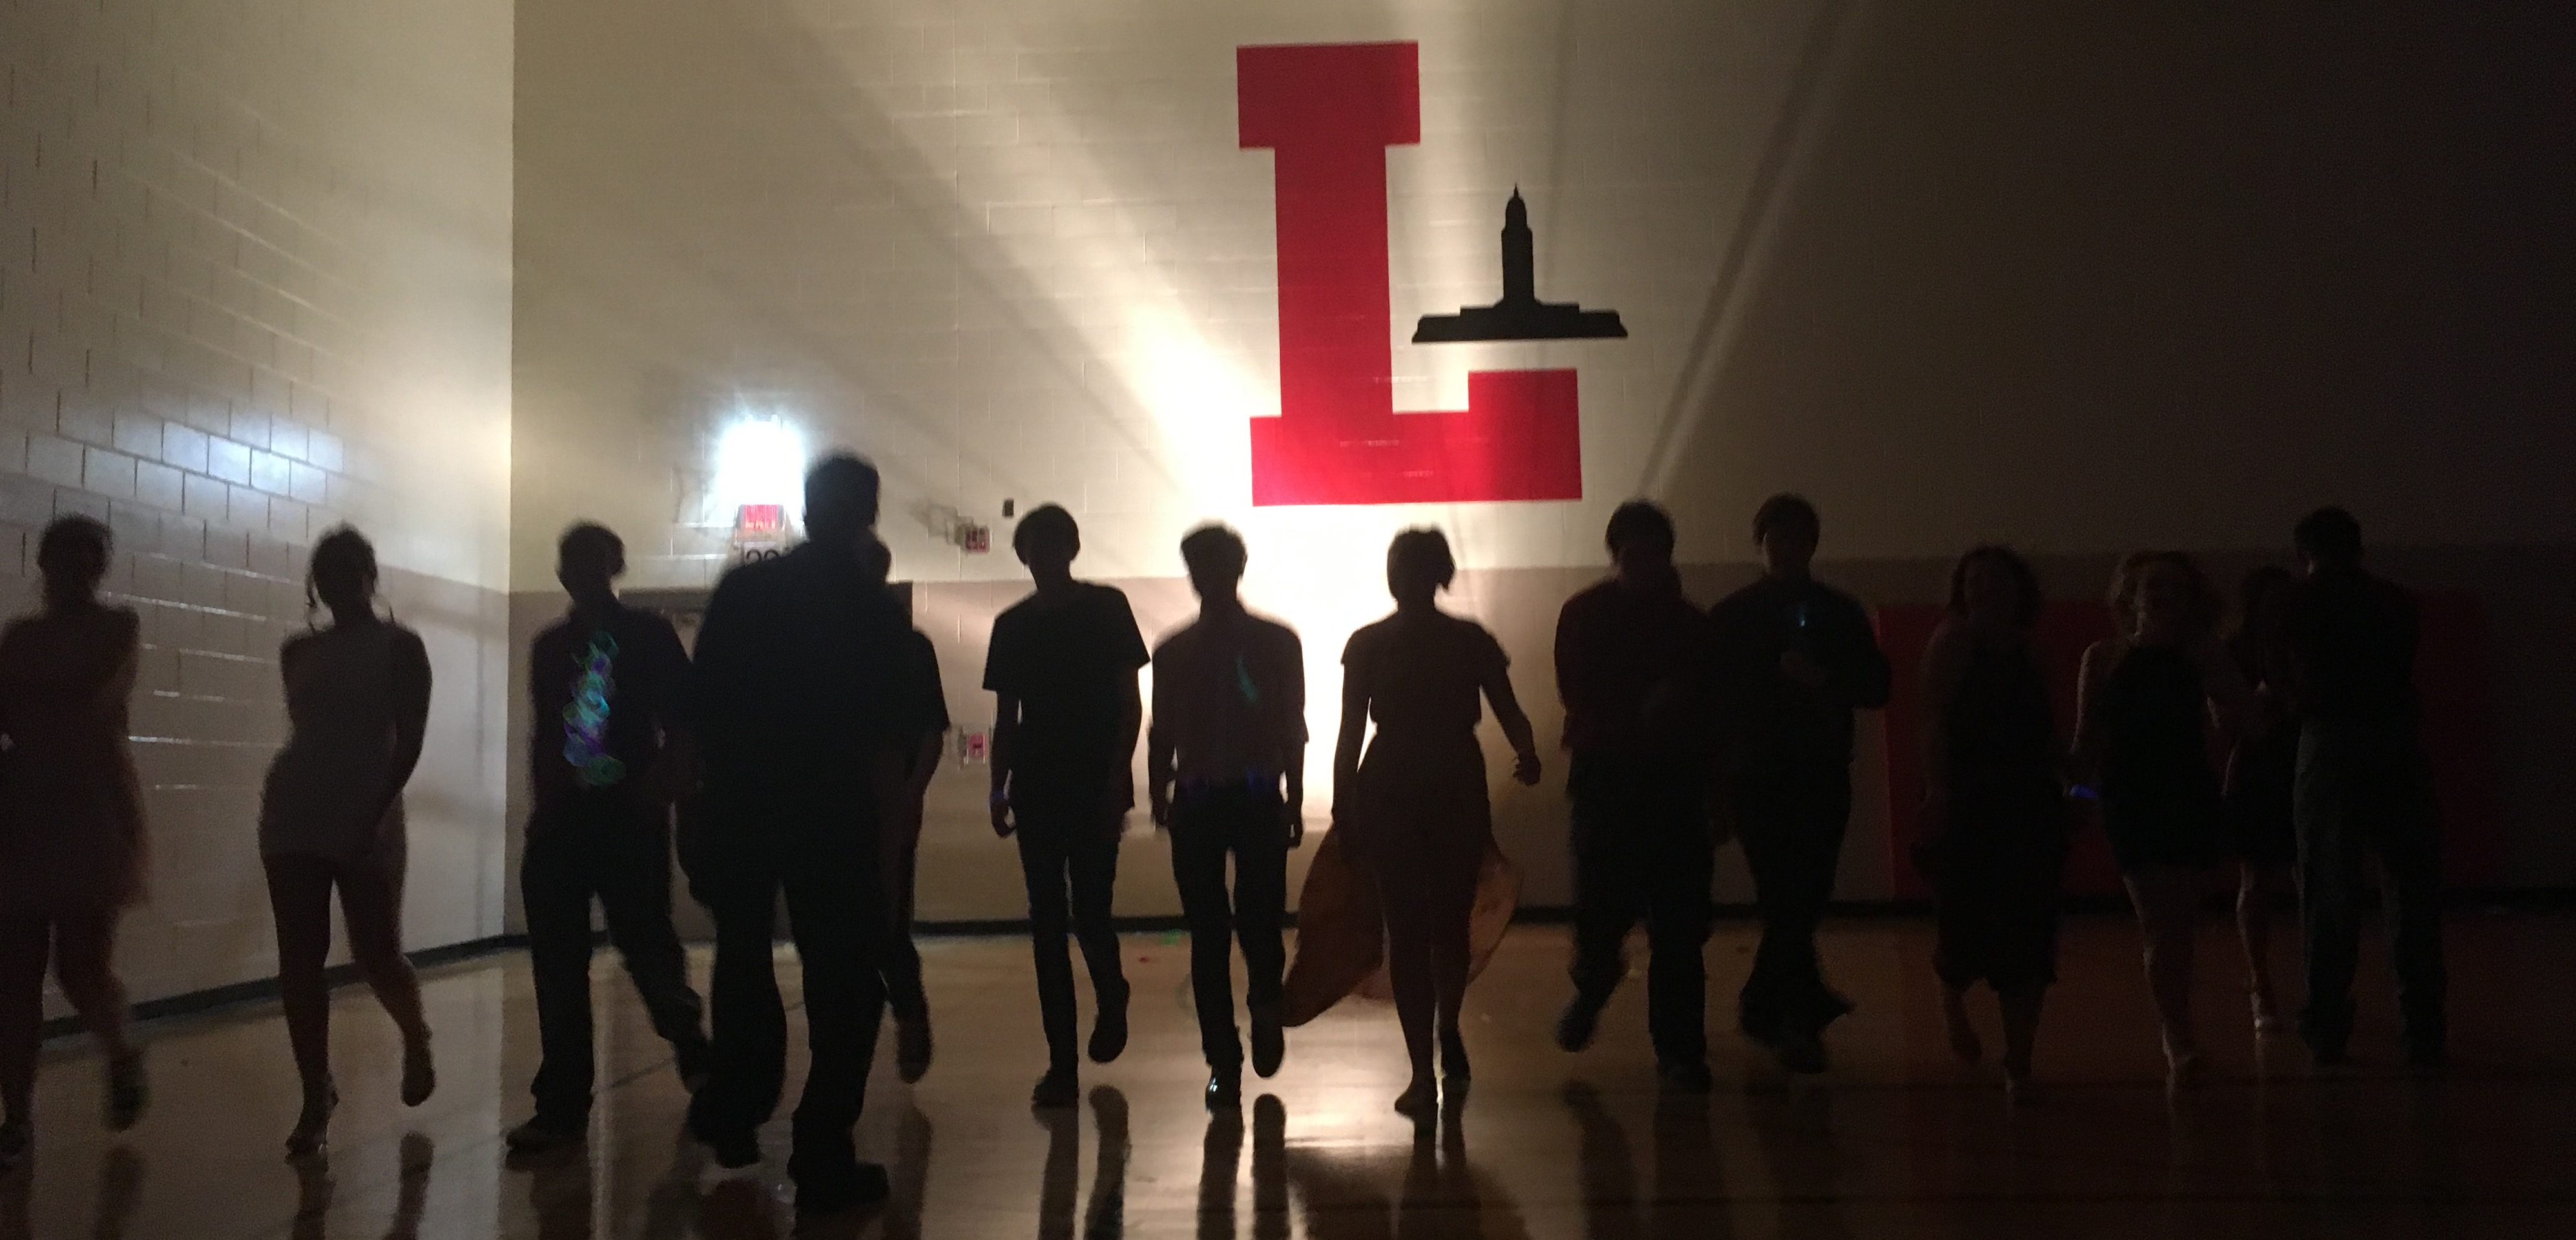 Students take to the floor at Homecoming on Sept. 1, 2017 in the South Gym. Photo courtesy of Joshua Lupher